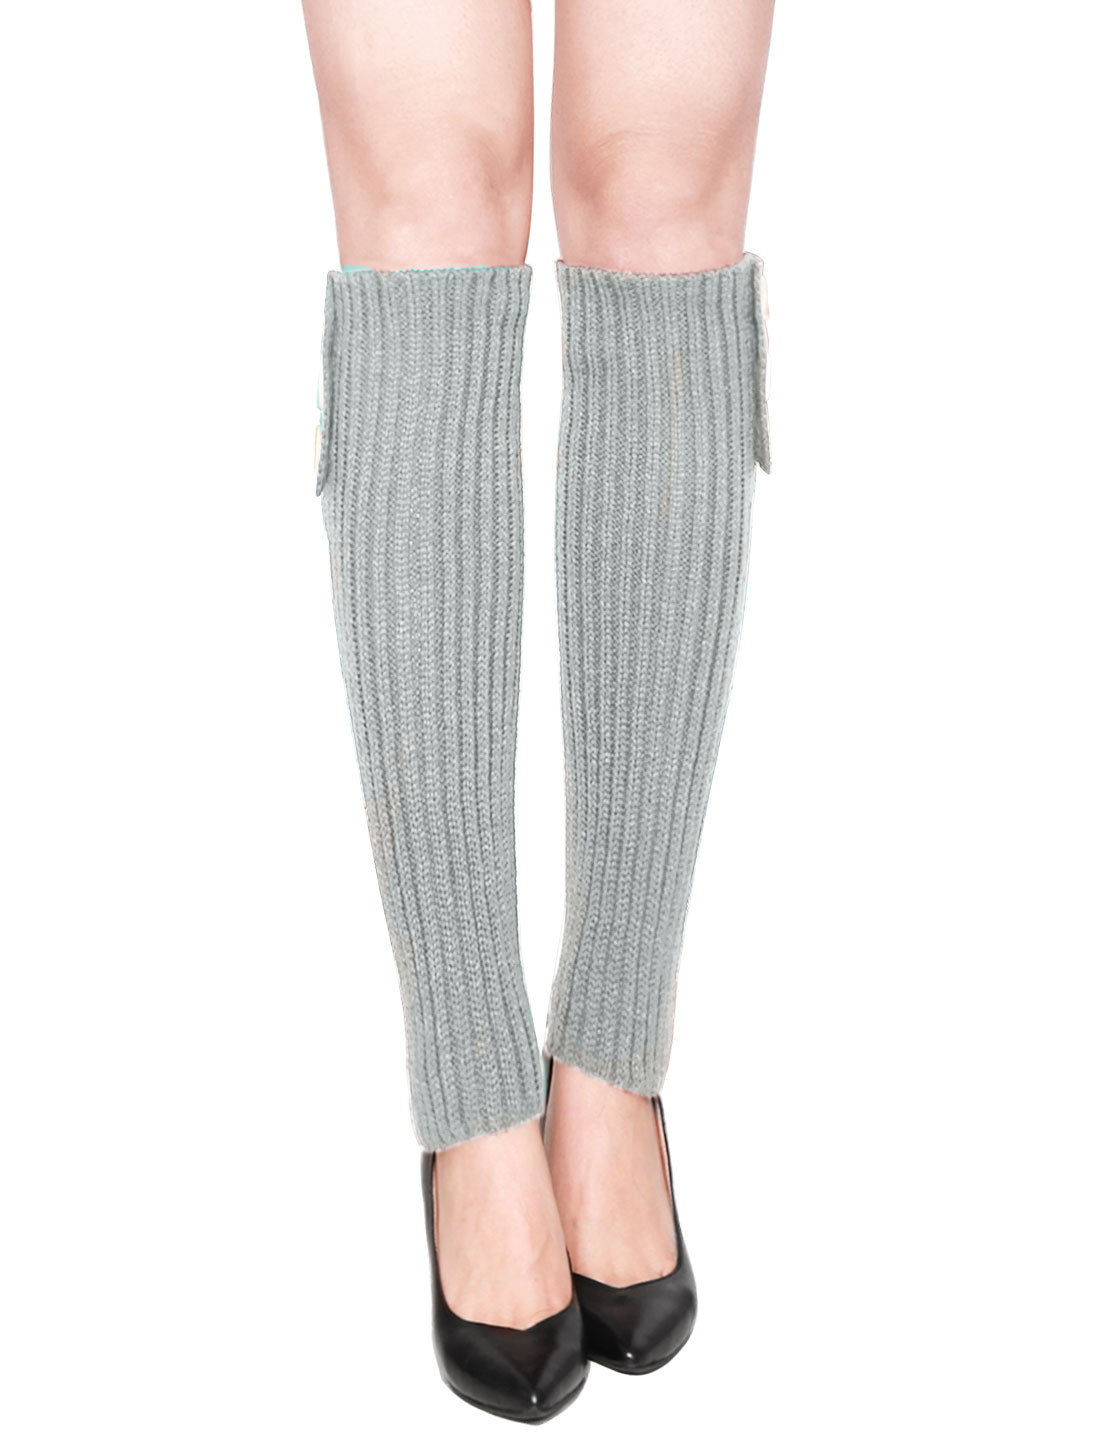 Women Three Buttons Decor Ribbed Knit Knee High Leg Warmers Pair Light Gray